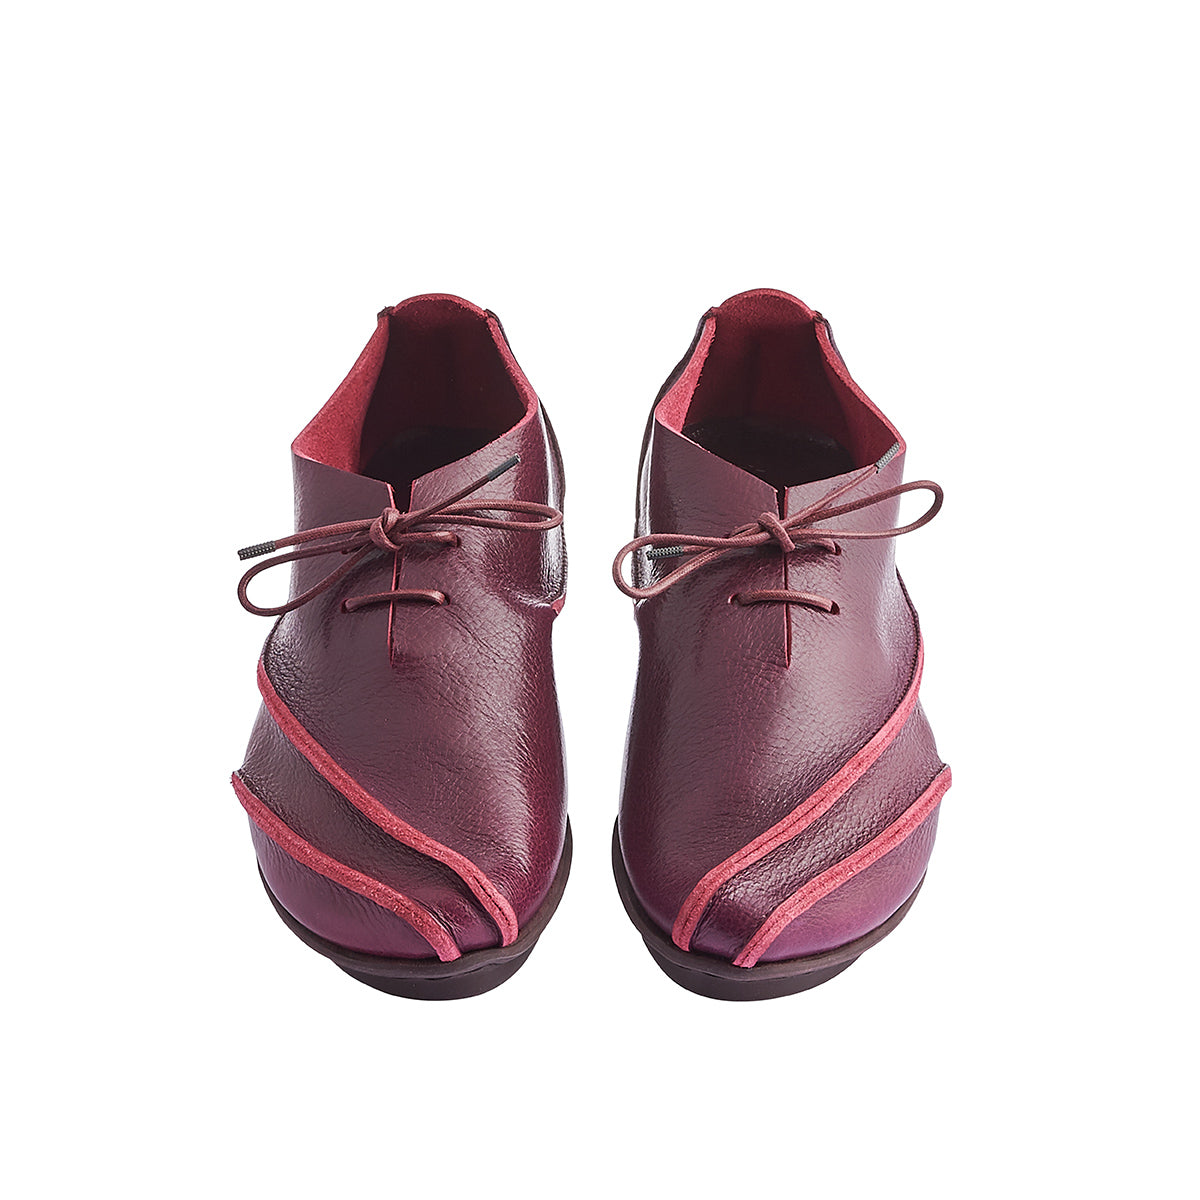 With a rich glossy leather finish, Taste is an unbelievably comfy lace-up with swooping exposed seams. The 'penna' sole is soft and flexible underfoot and the luxurious unlined leather upper envelops the foot while creating a sculptural silhouette.